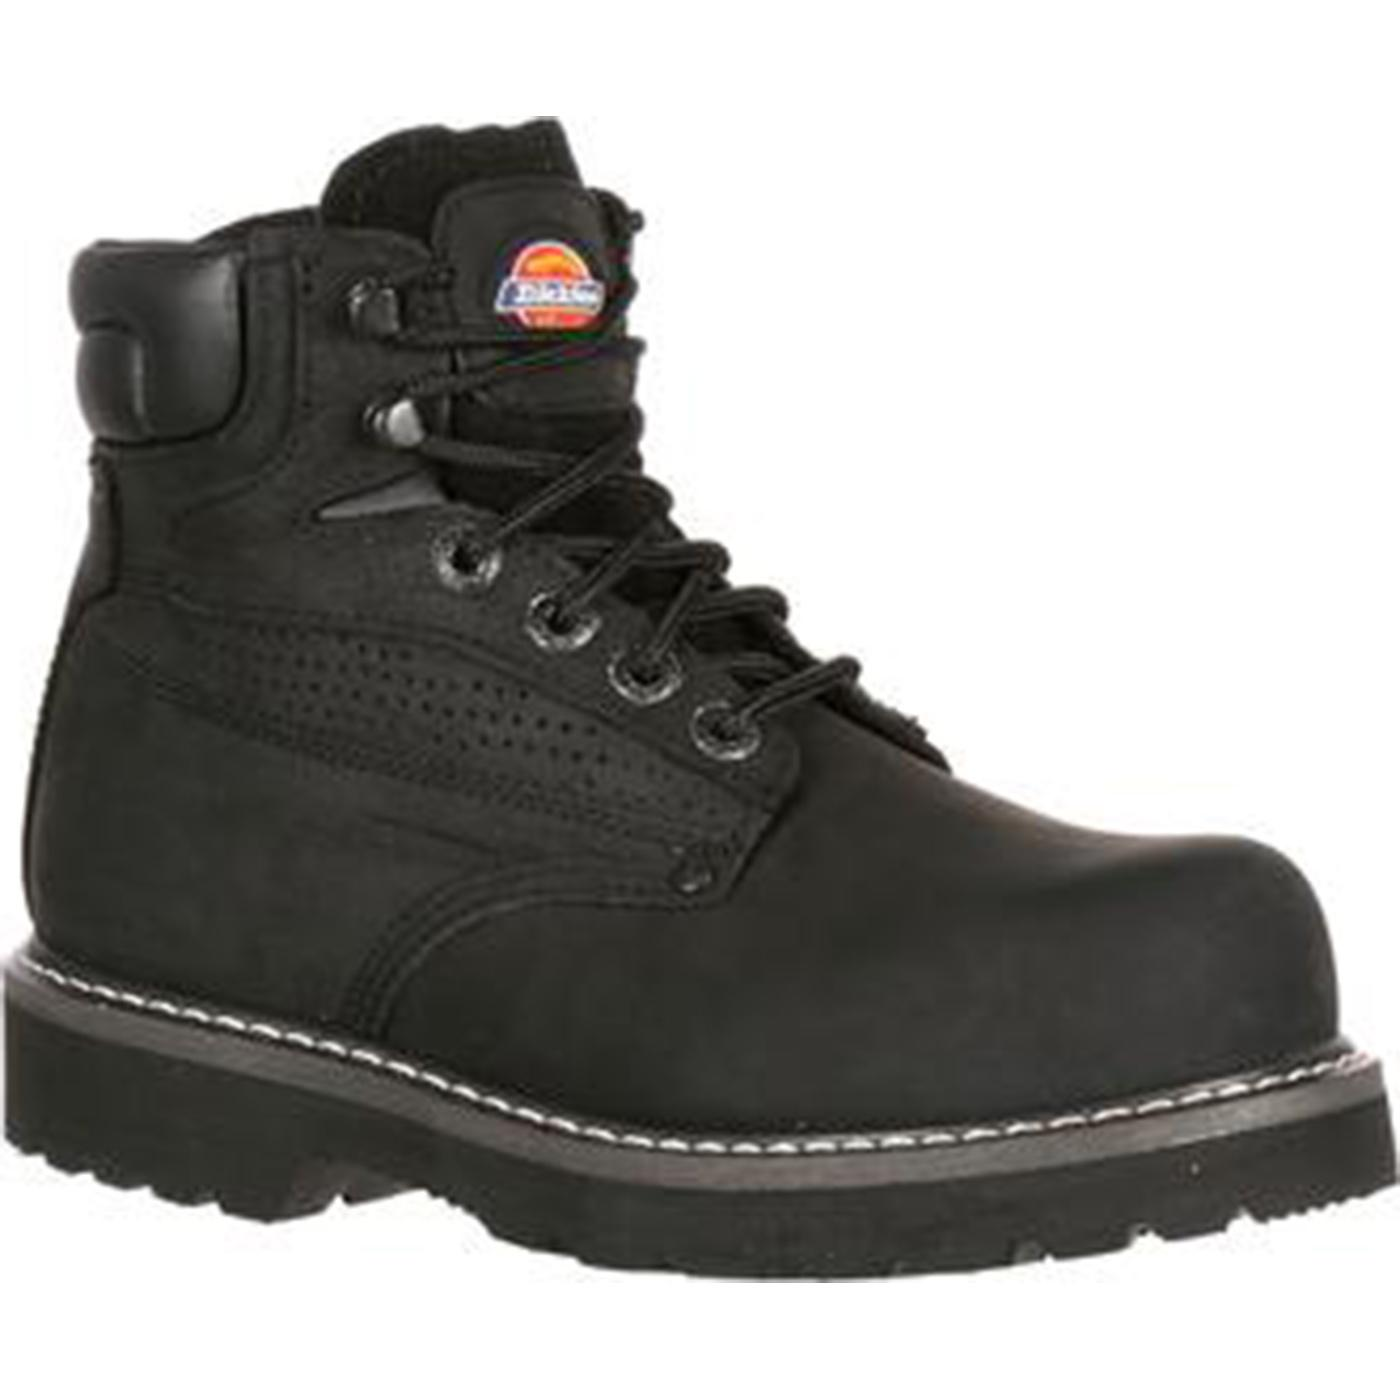 Dickies Breaker Steel Toe Work Boot Dps715